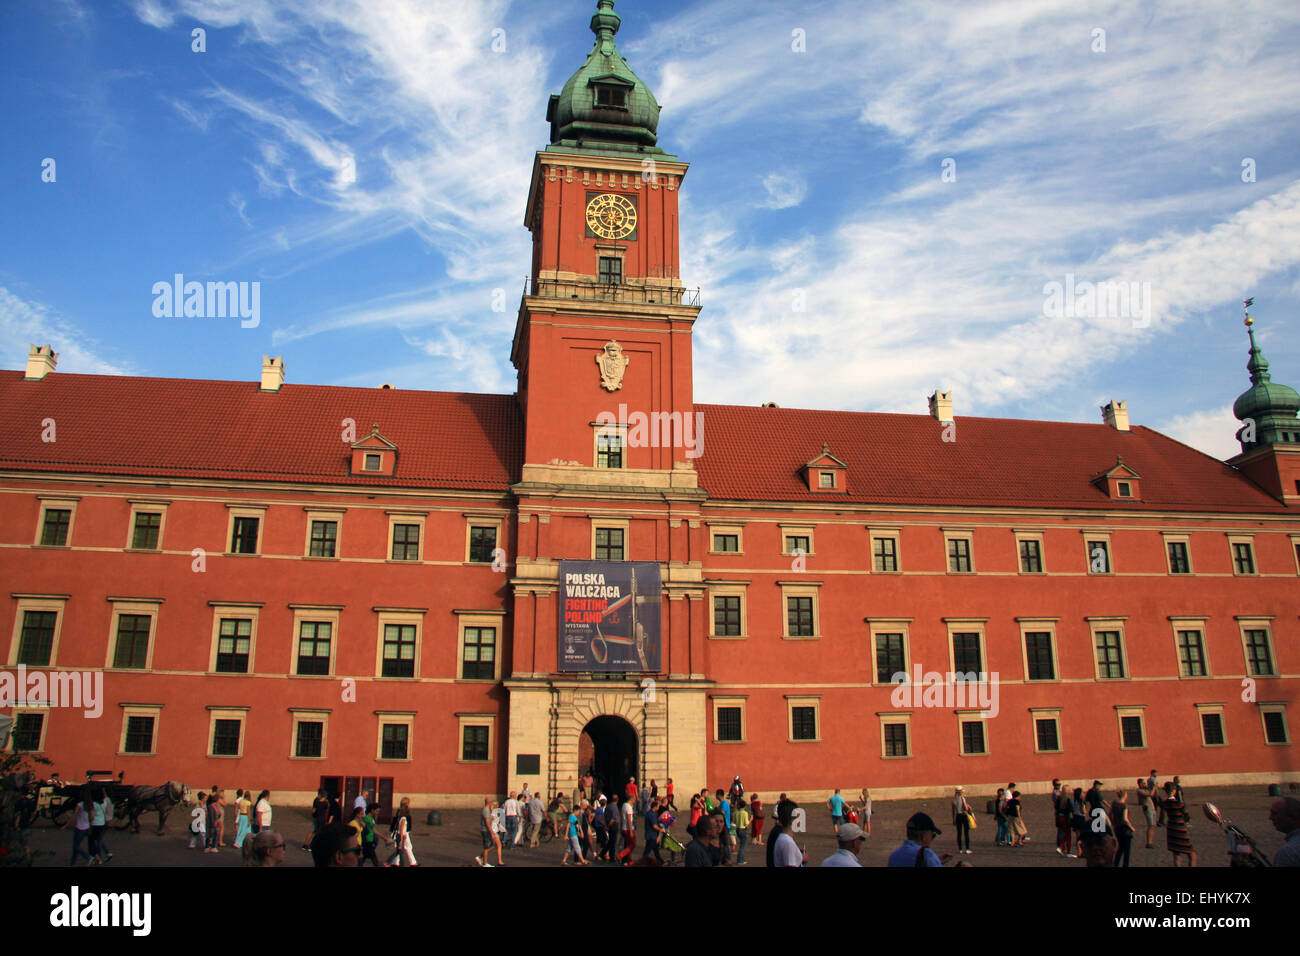 Poland, Warsaw, Europe, castle, Unesco, world cultural heritage, Zamkowy - Stock Image